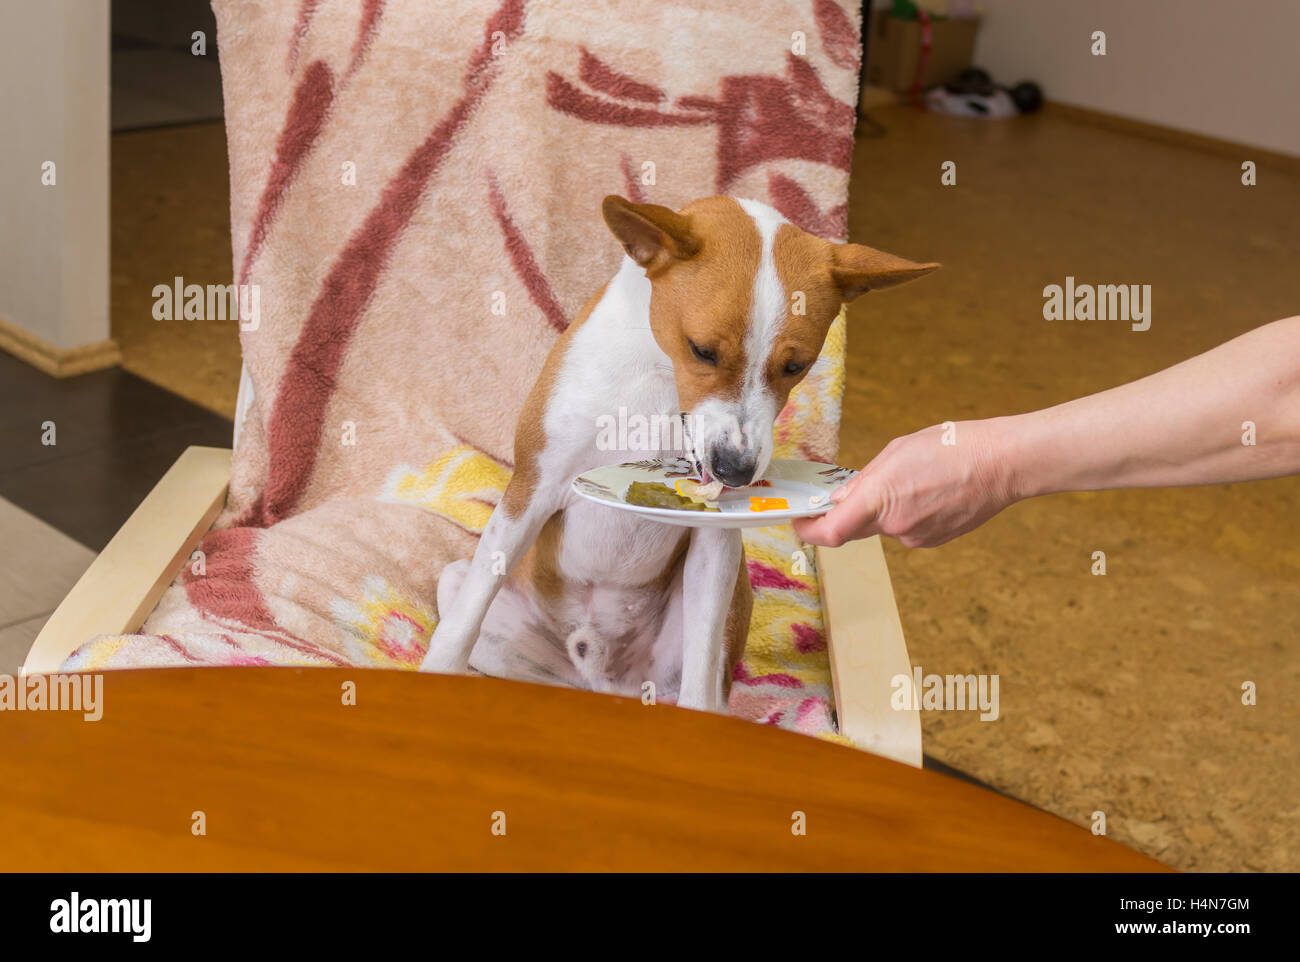 VIP servicing of spoilt child of fortune (Basenji dog) in own restaurant - Stock Image